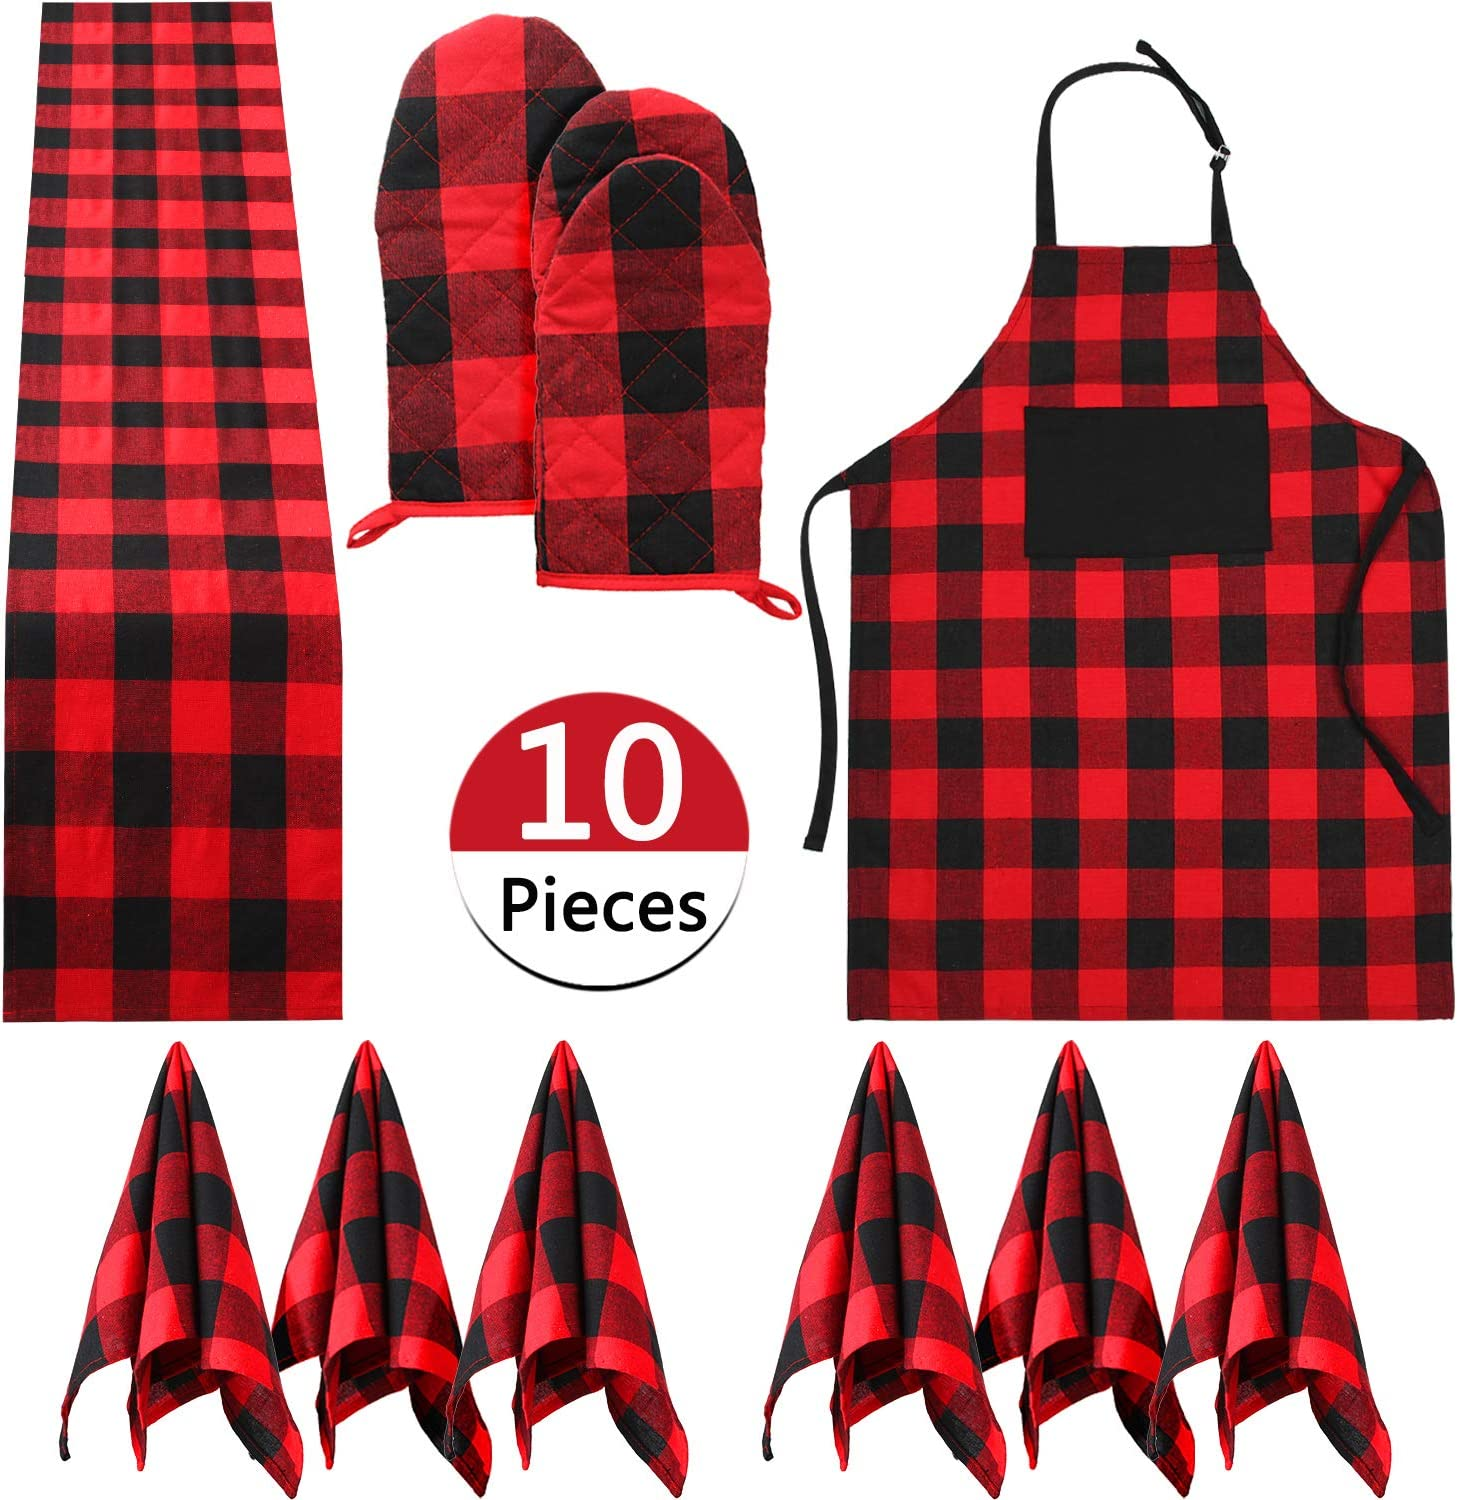 10 Pieces Christmas Buffalo Plaid Check Table Runner Placemat Red Black cloth Napkins Oven Heat Resistant Buffalo Plaid Cotton Apron Adjustable with Pocket Extra Long Ties Set for Kitchen Cook